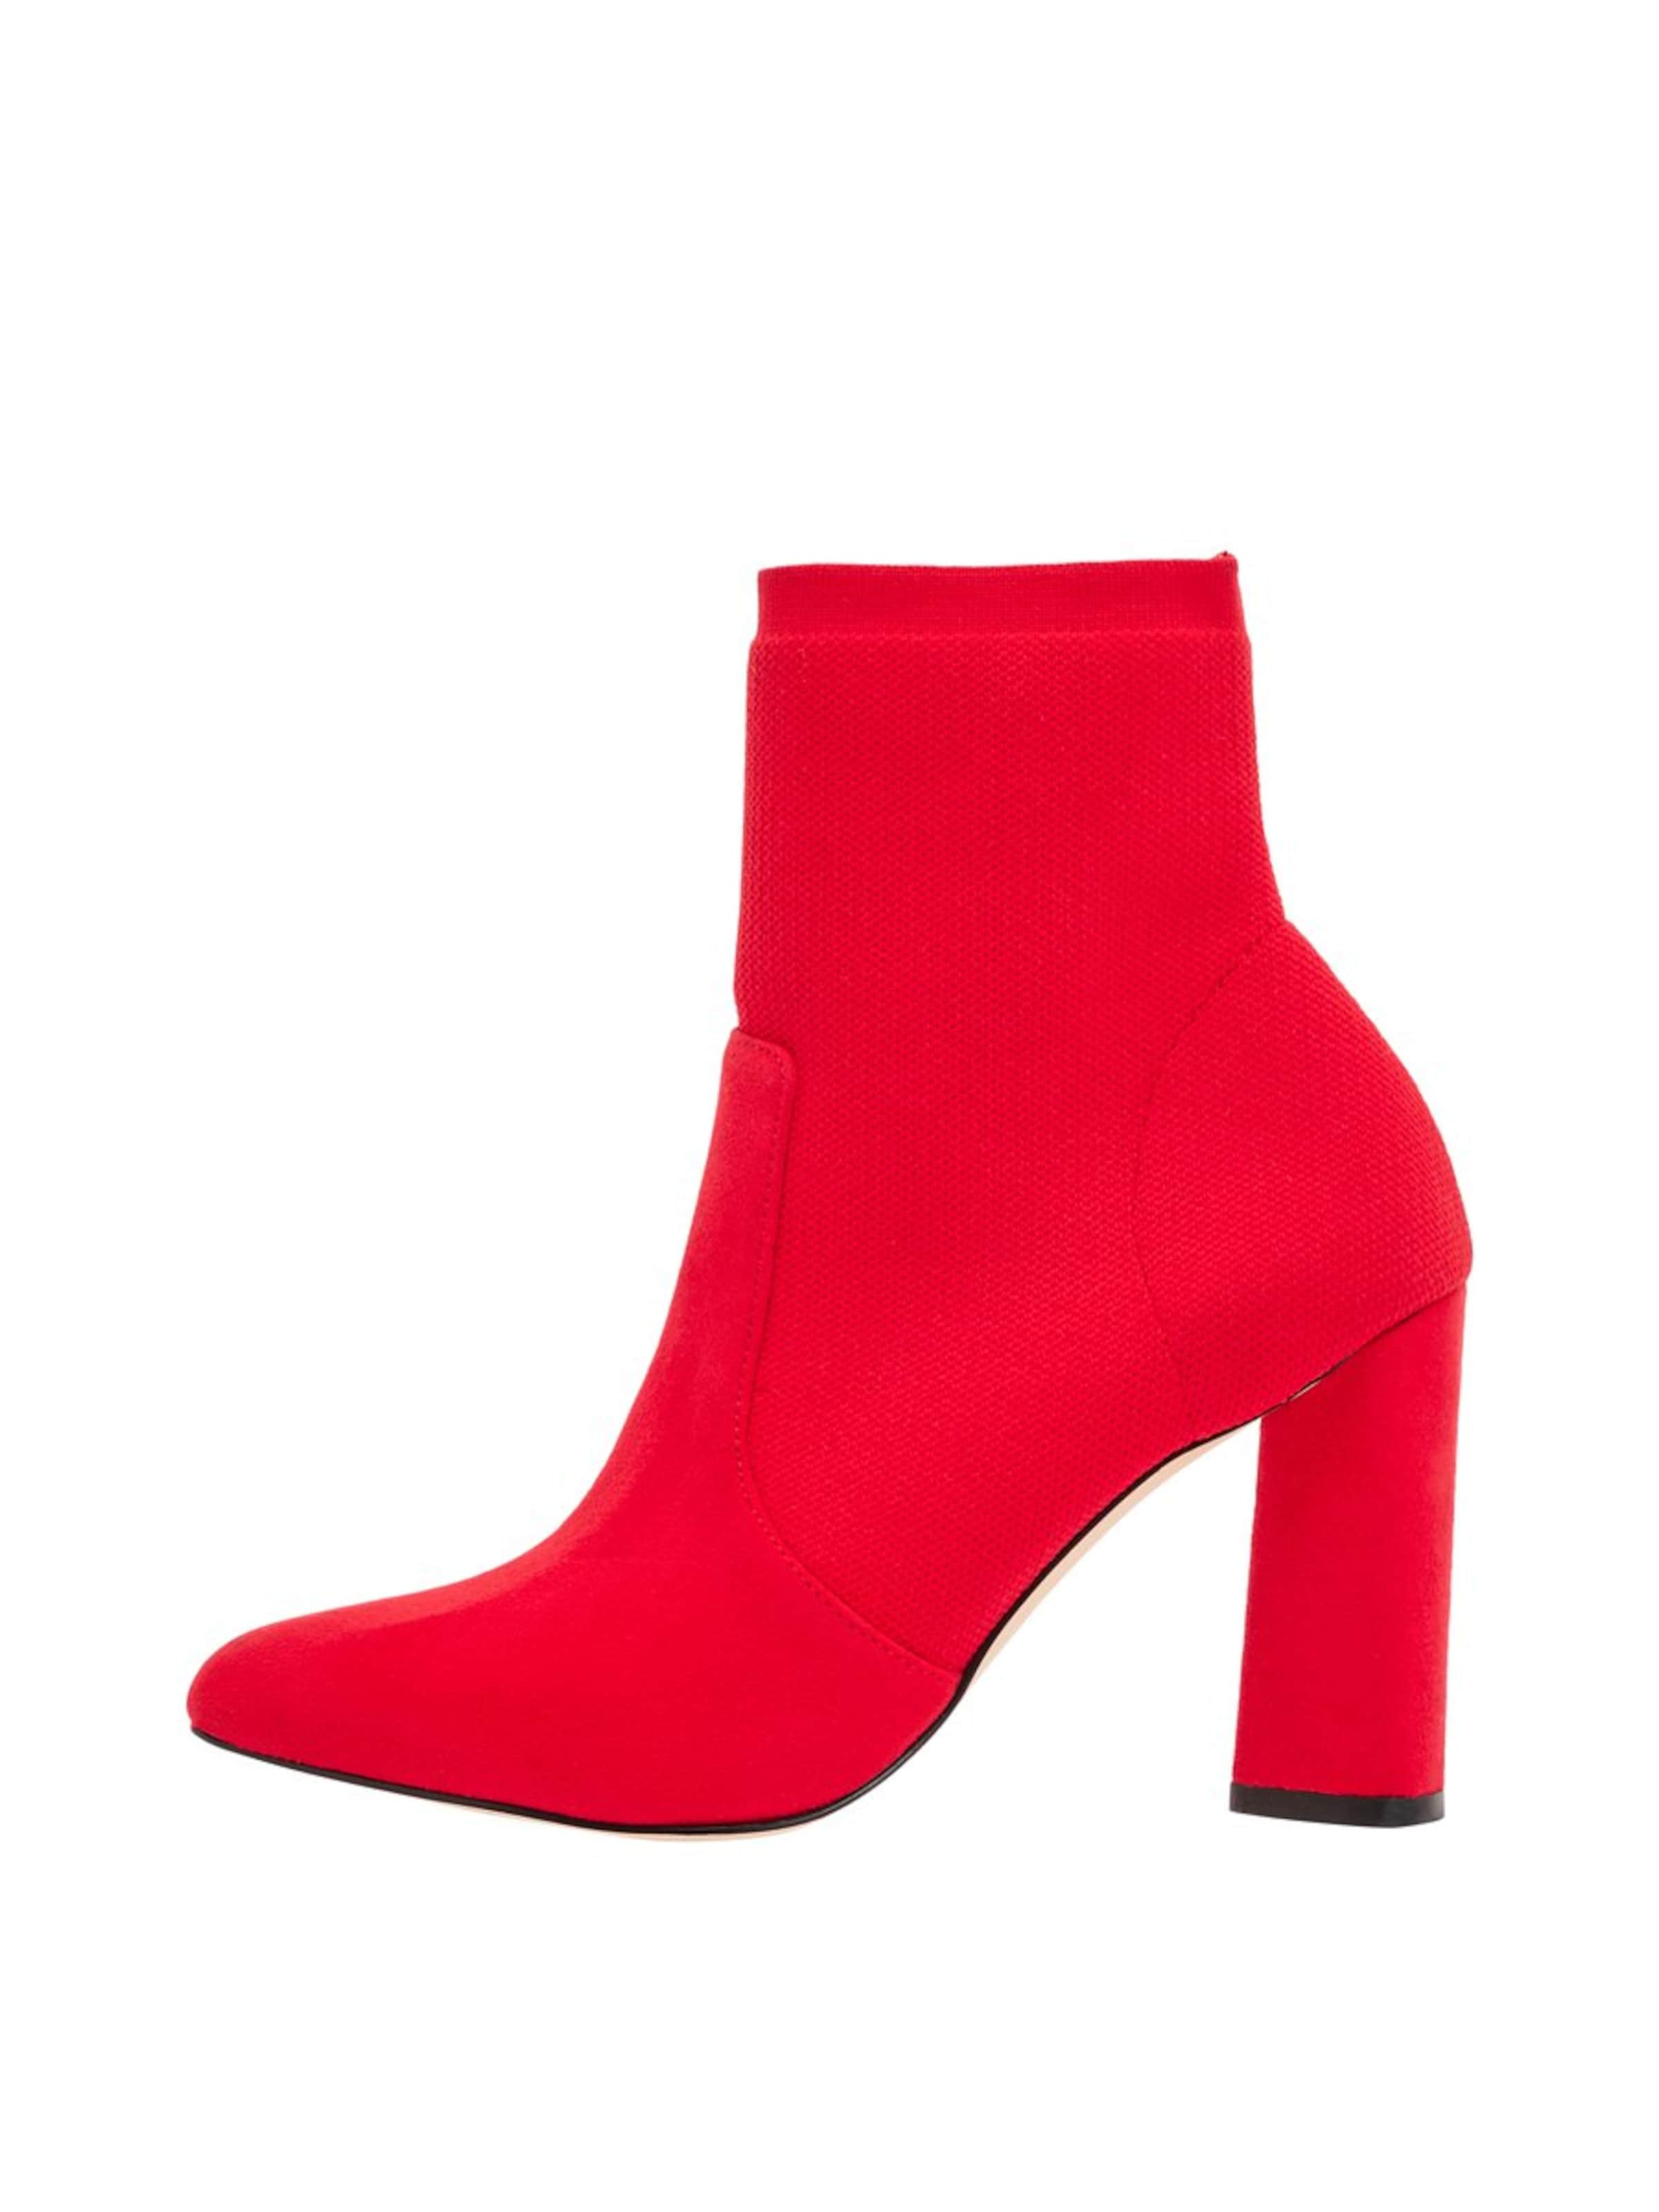 Rouge In BiancoBottes BiancoBottes BiancoBottes Rouge In orCxdBe